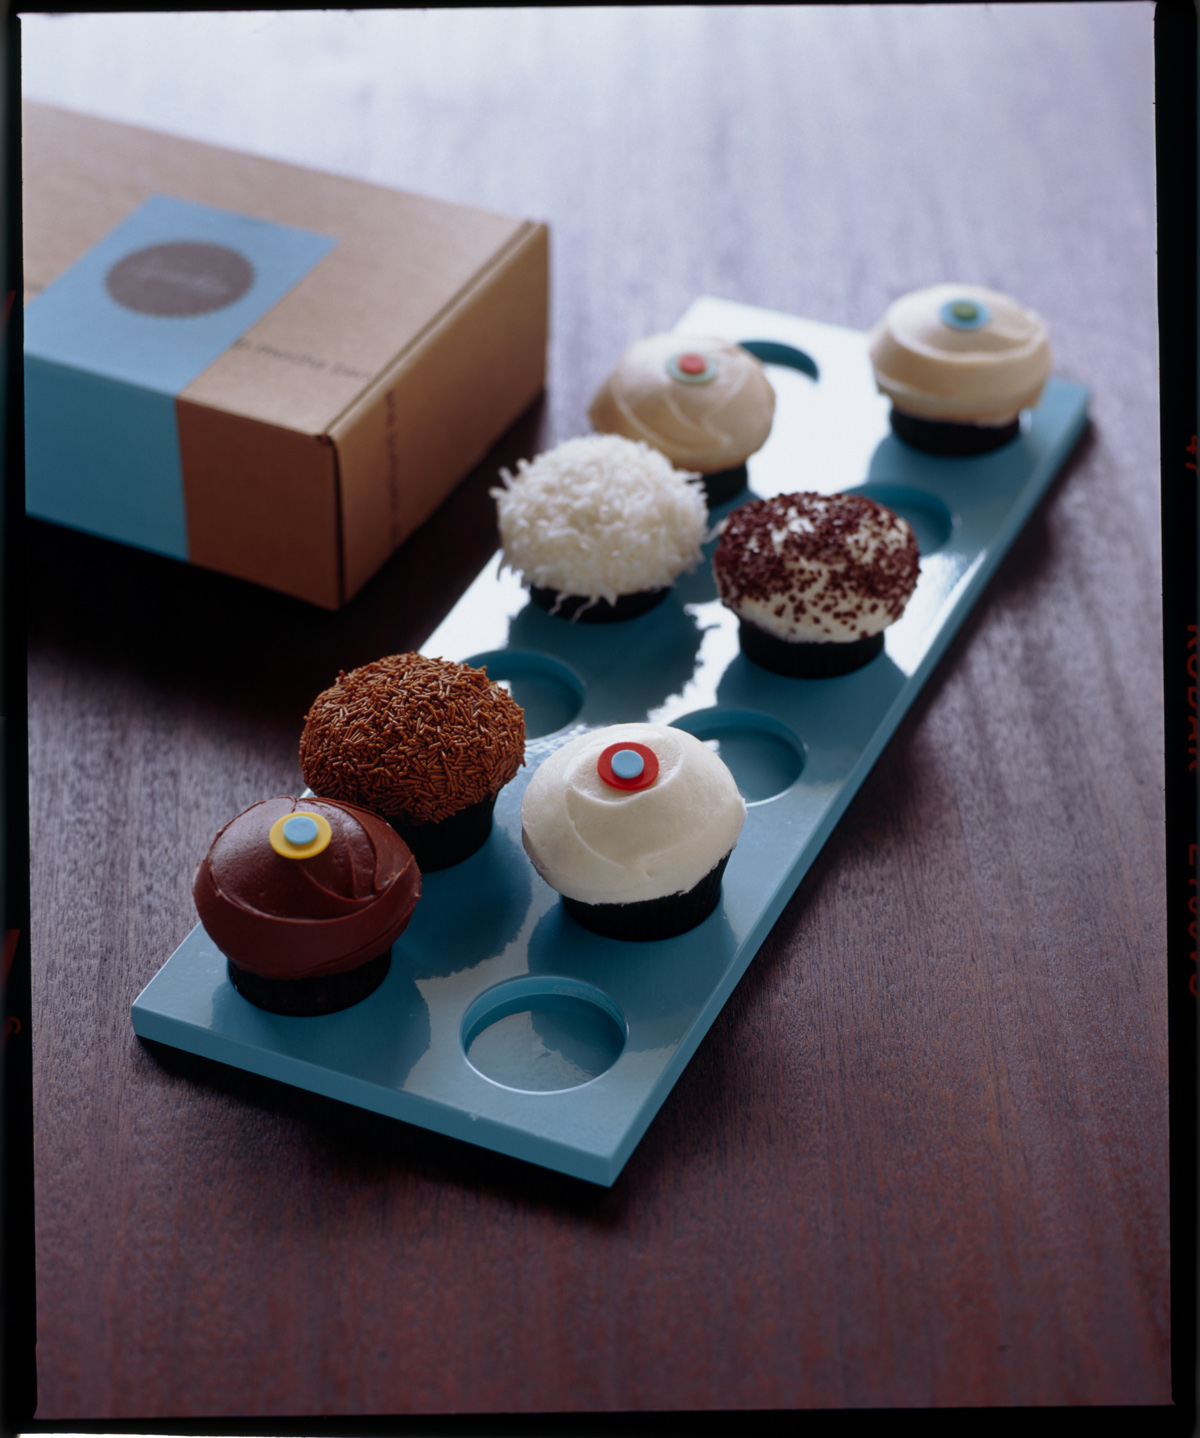 One for me...one for you...one for me...(Photo courtesy of Sprinkles Cupcakes)